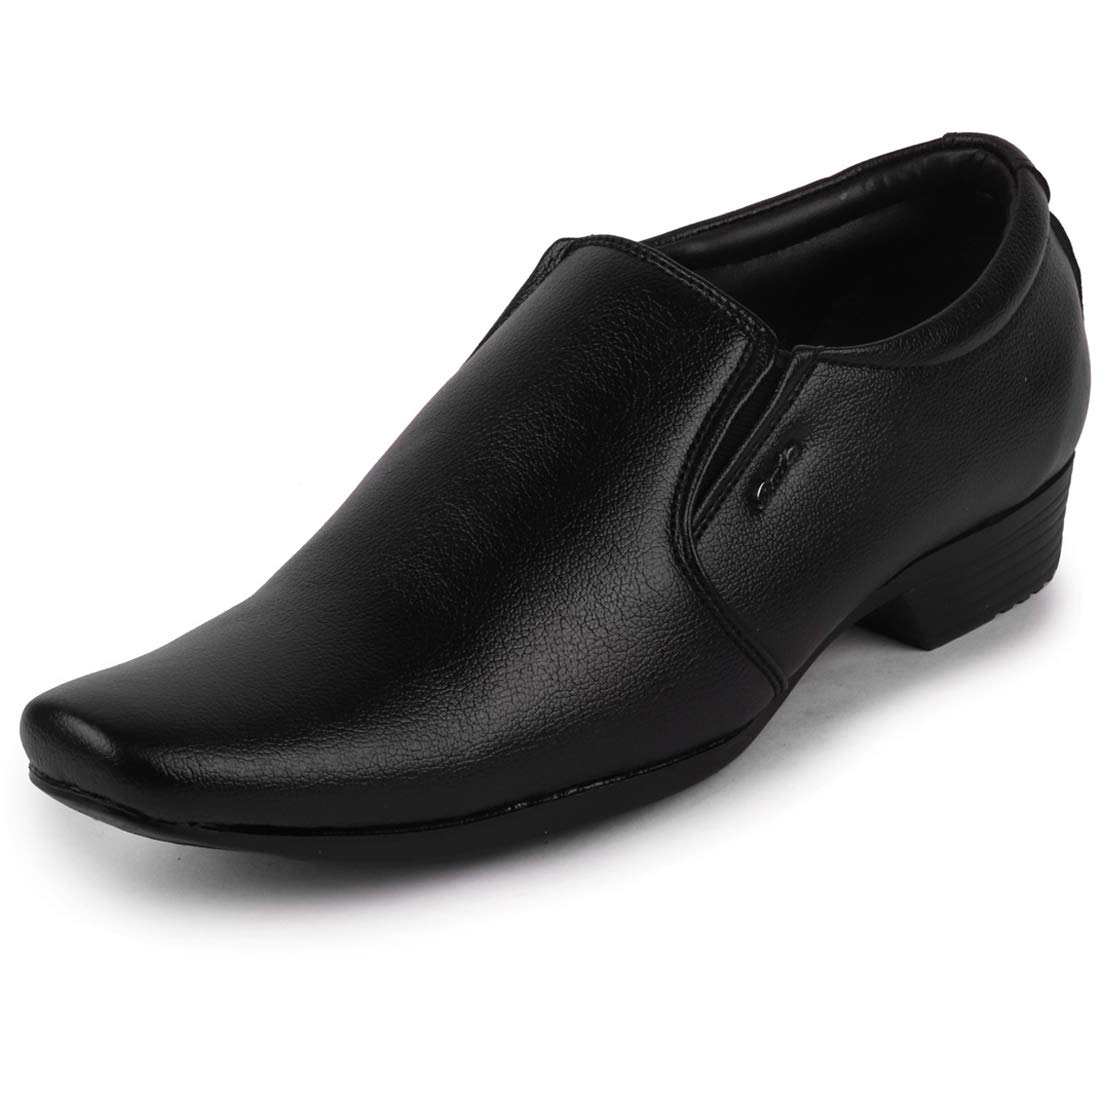 Bata men's formal shoes under 1000